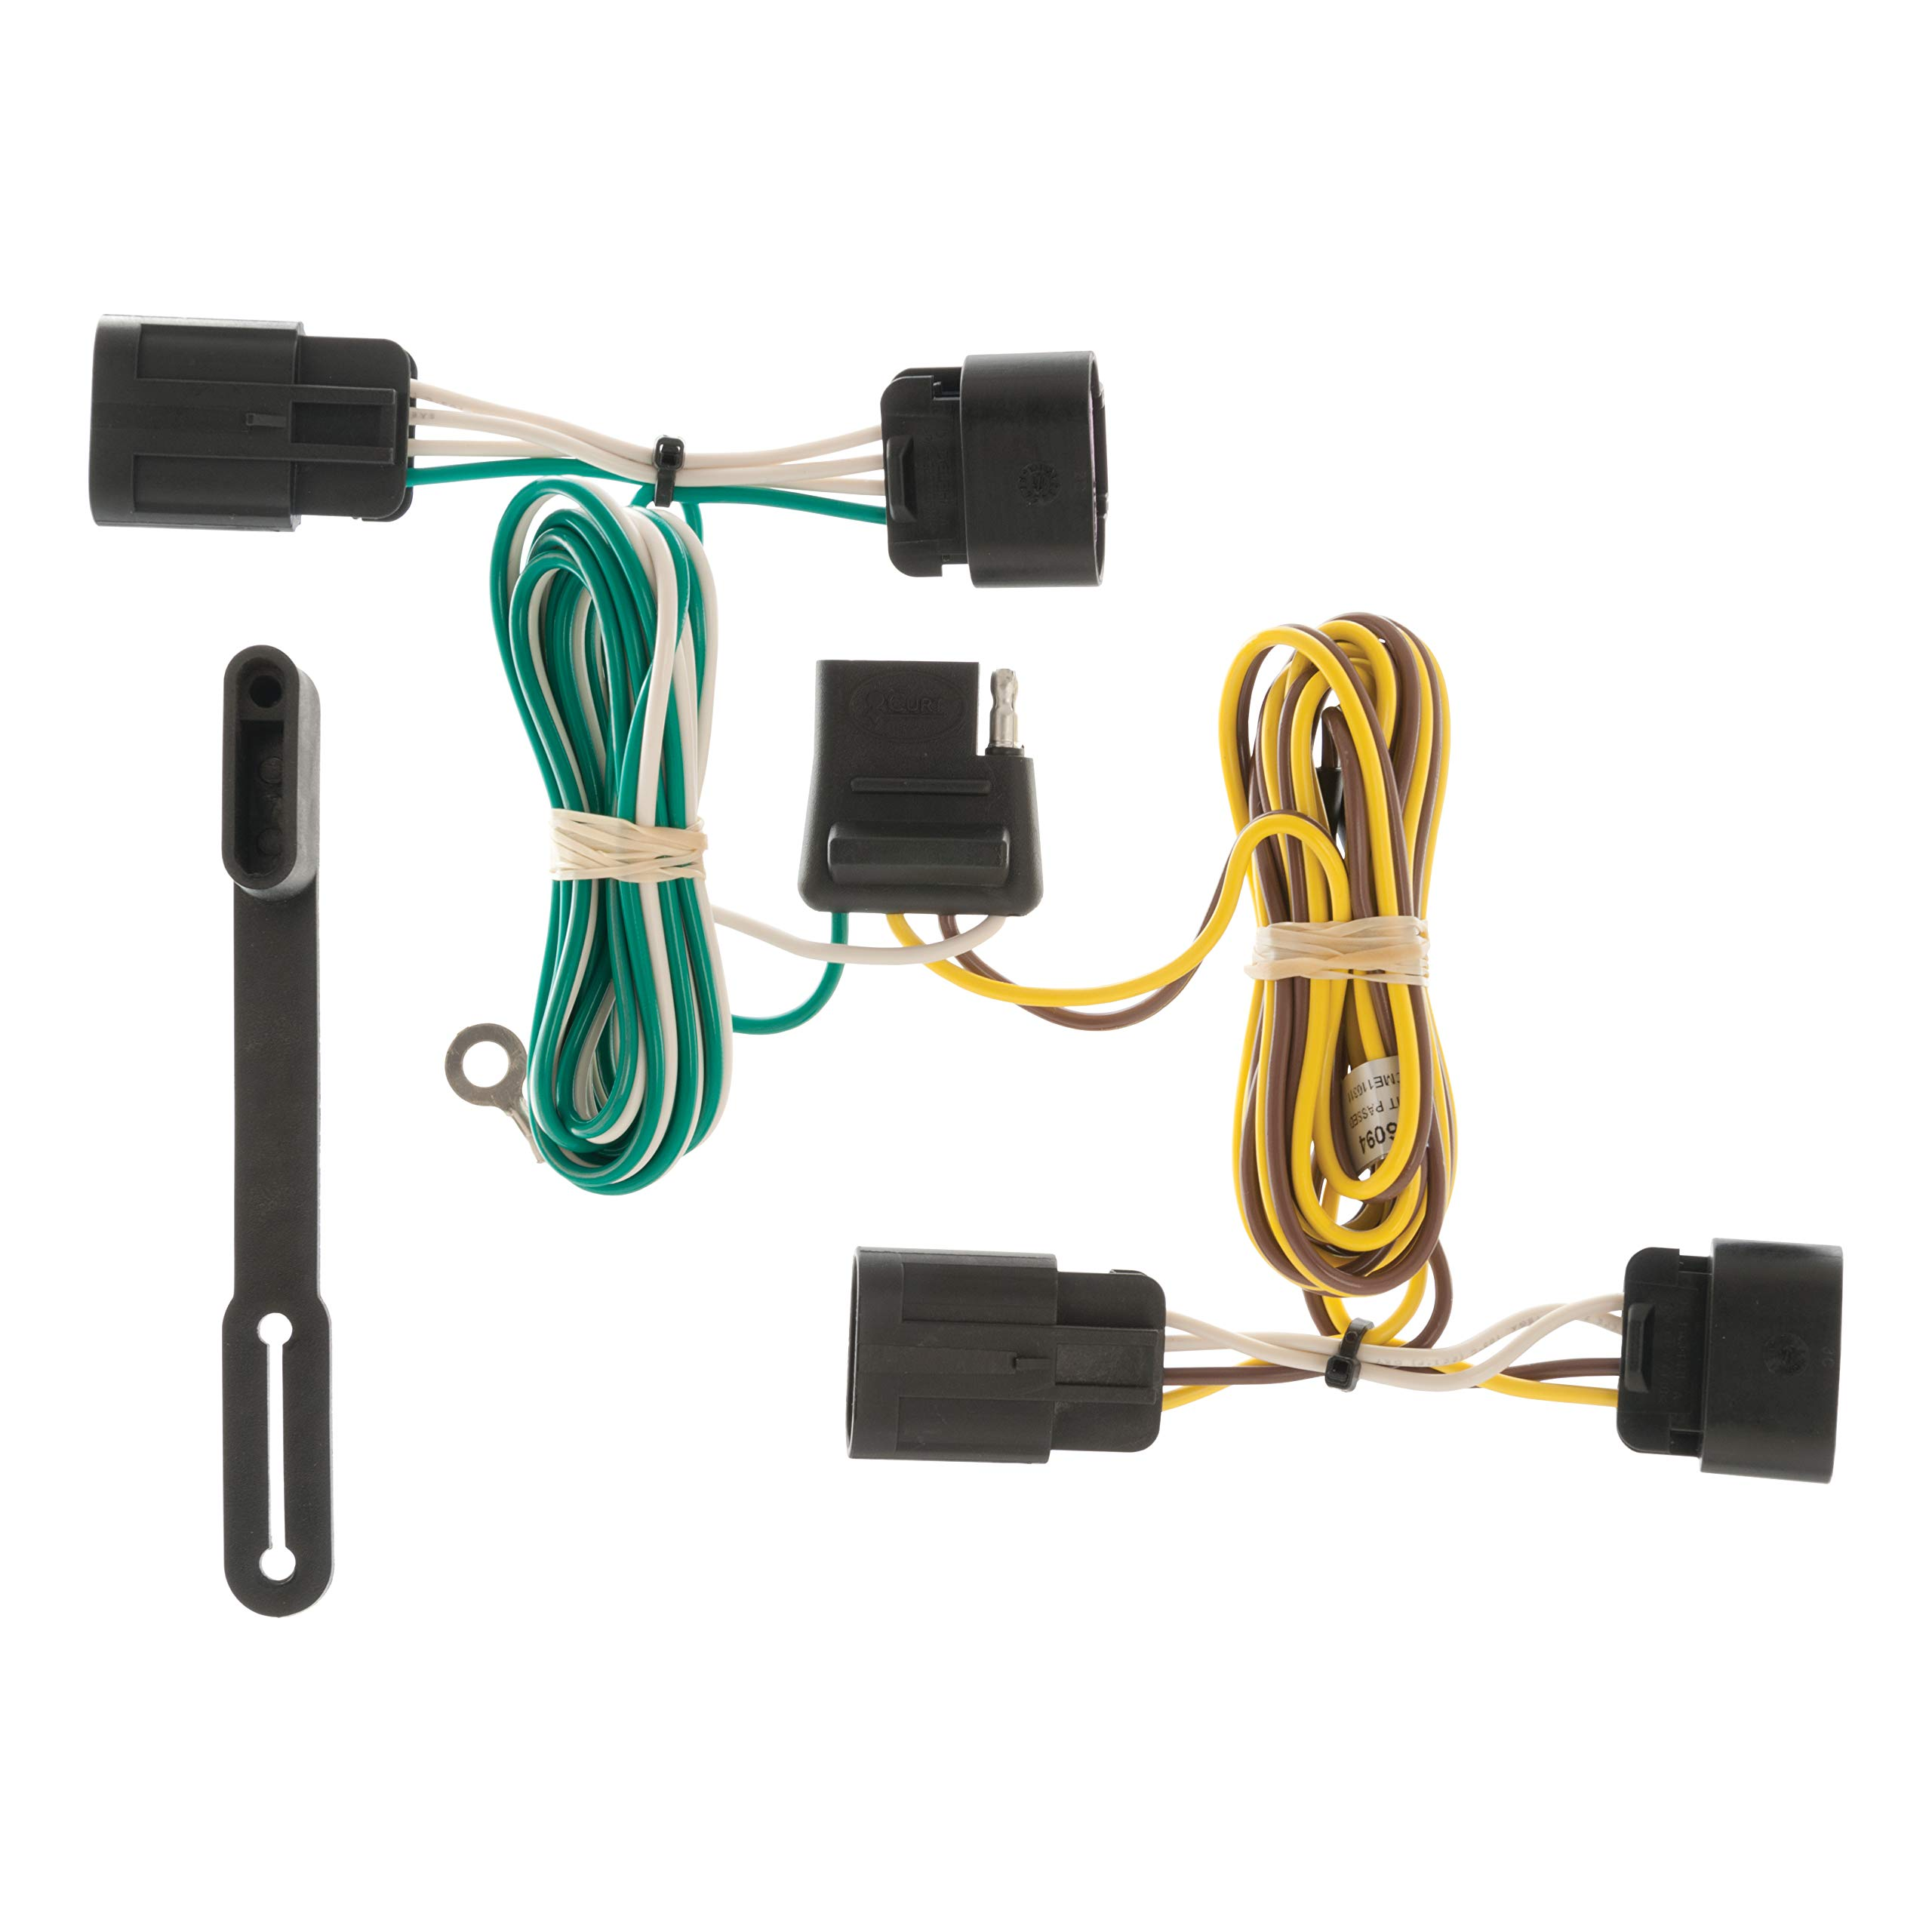 CURT 56094 Vehicle-Side Custom 4-Pin Trailer Wiring Harness for Select Chevrolet Equinox, GMC Terrain by CURT